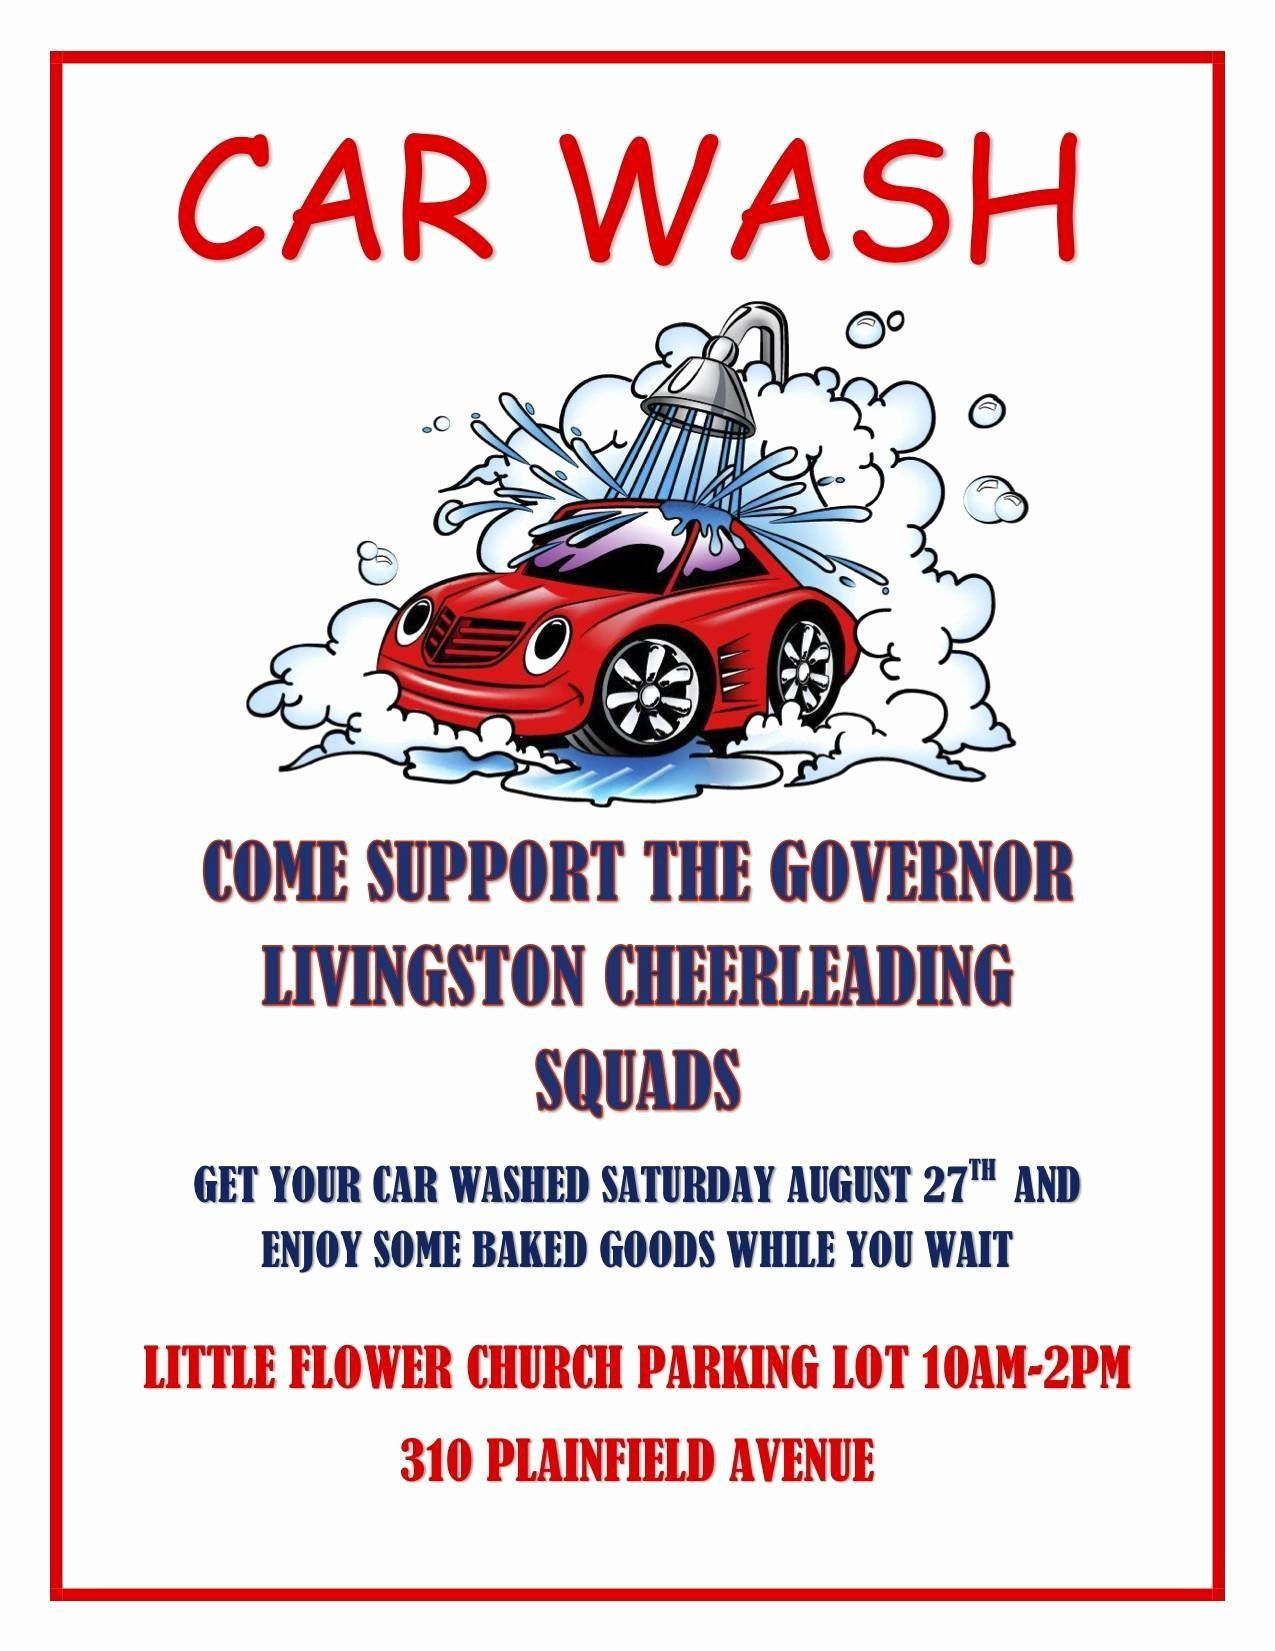 Car Wash Fundraiser Flyers Inspirational Gov Livingston